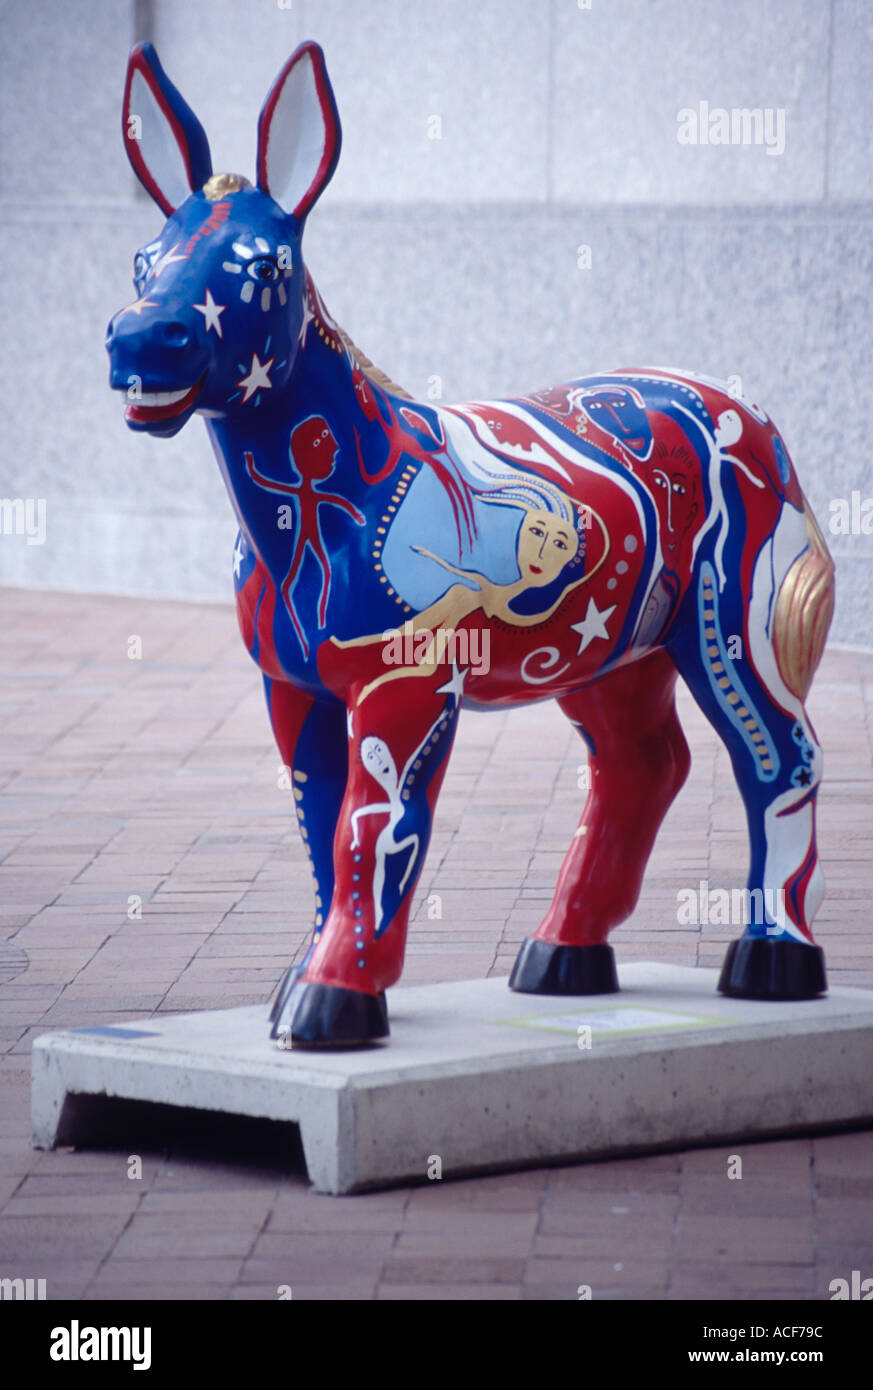 Imaginatively painted statue of a Democratic donkey part of the Party Animals art series on Washington DC sidewalks - Stock Image